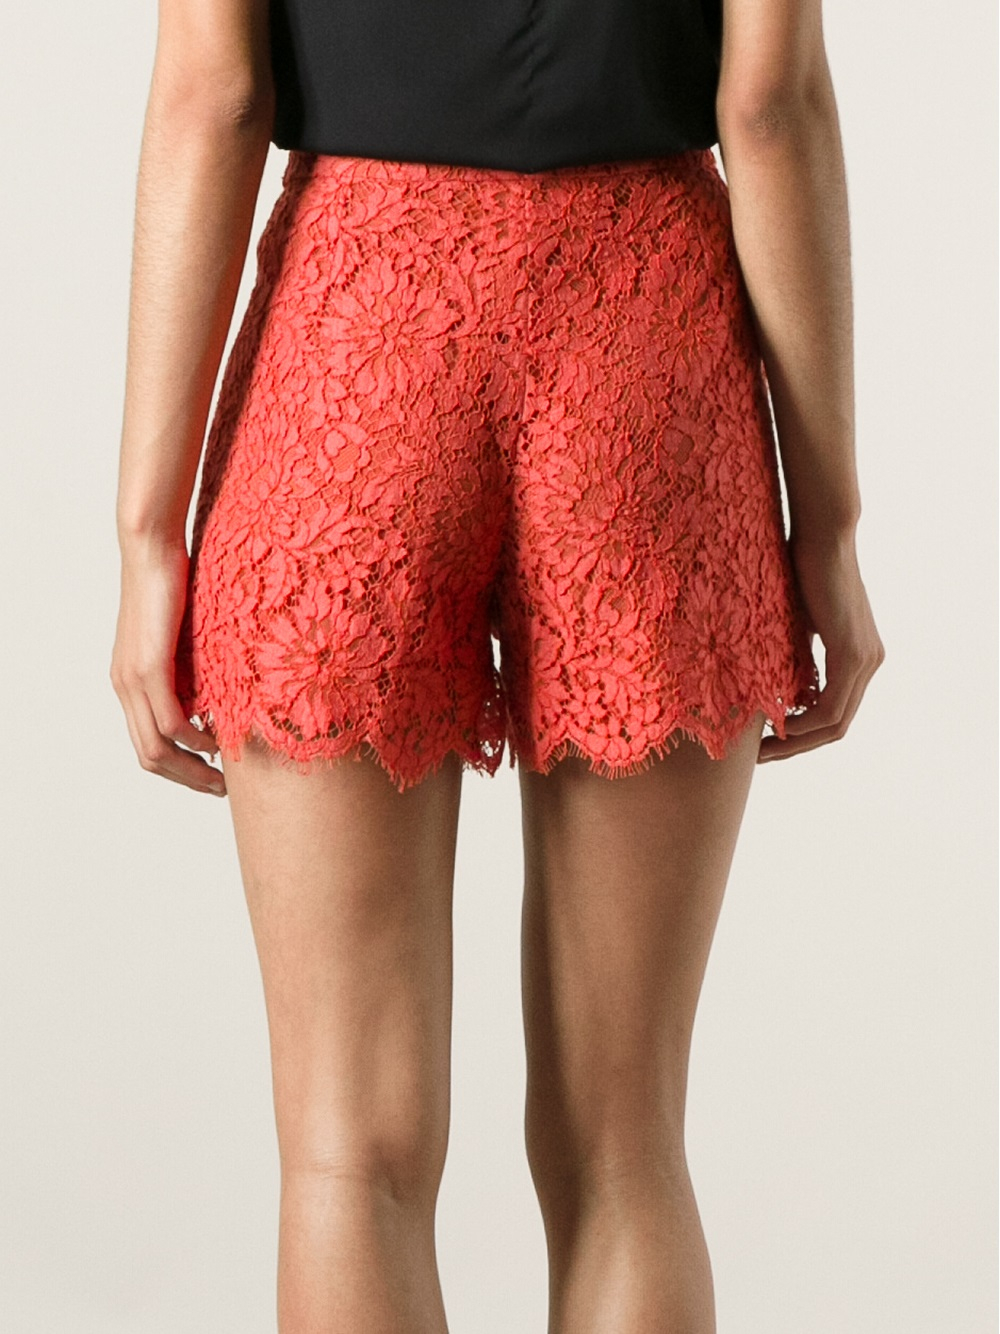 Dolce & gabbana Lace Shorts in Red | Lyst